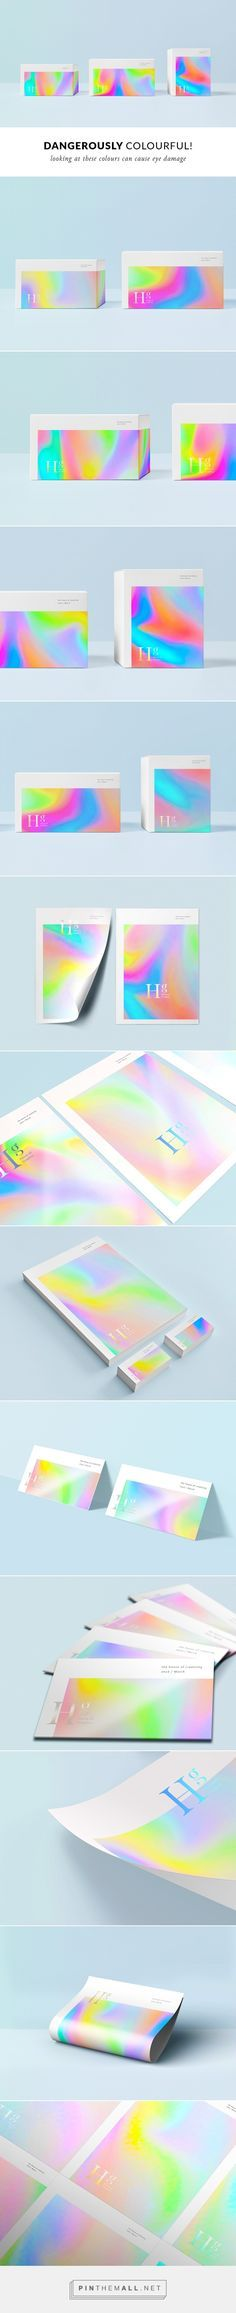 Holographic feeling without metallic effect Gfx Design, Print Design, Brand Packaging, Packaging Design, Saloon, Bussiness Card, Banners, Identity Design, Brand Identity